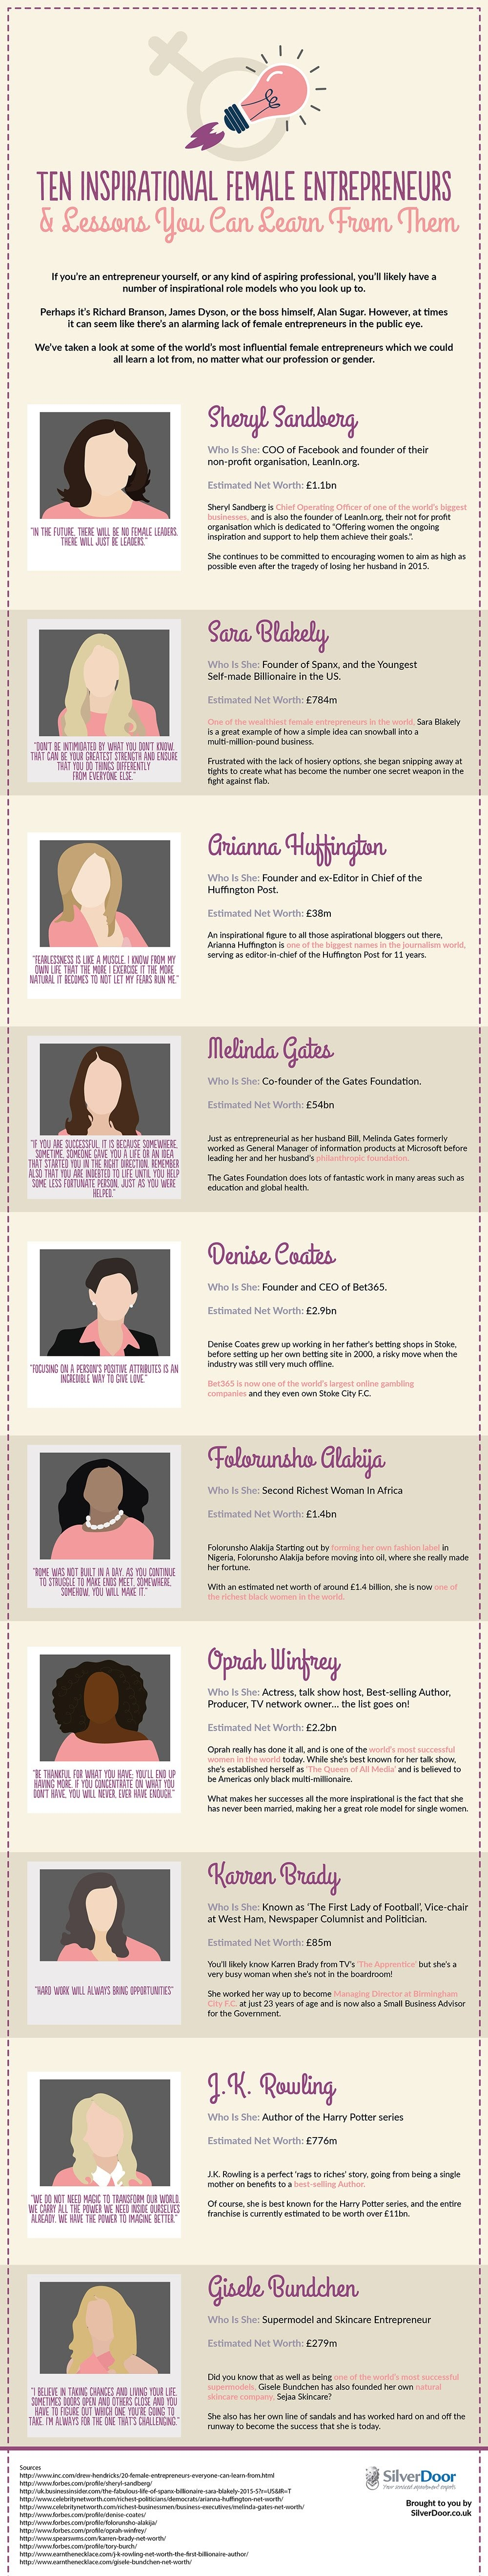 10 Inspirational Female Entrepreneurs & Lessons You Can Learn From Them - #Infographic